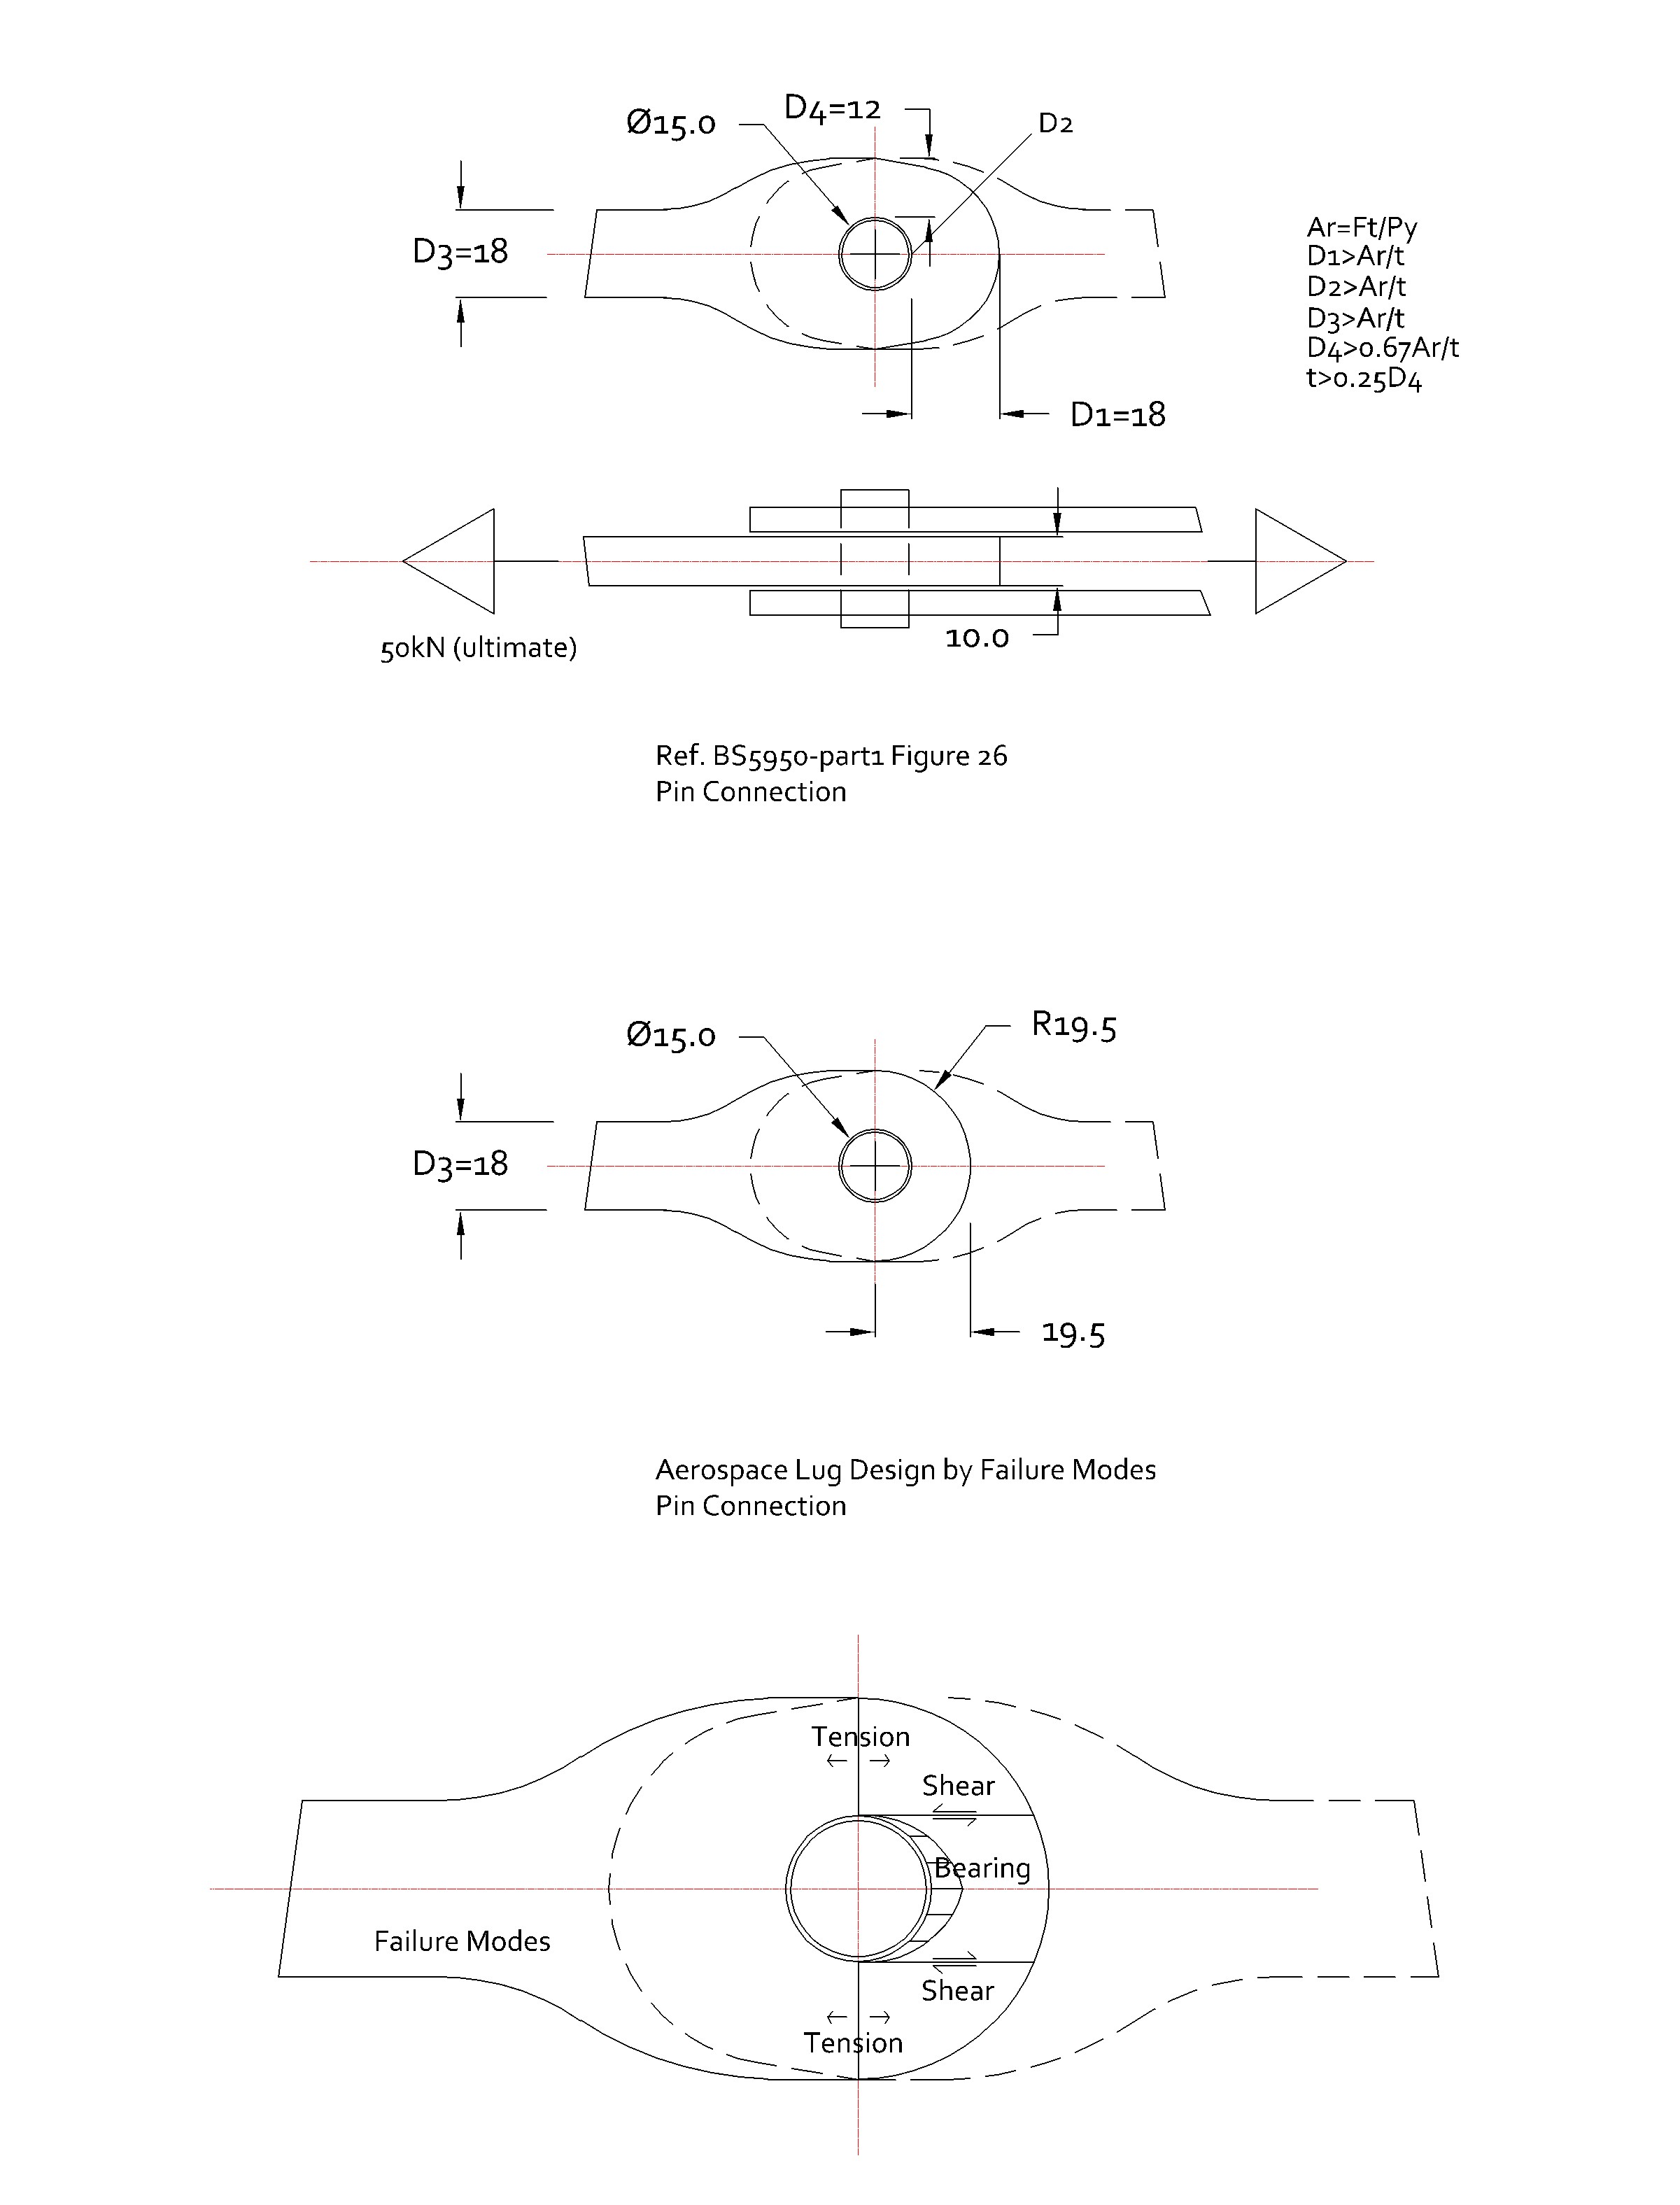 Discussion: Pin Connections - Design by Failure Modes Better